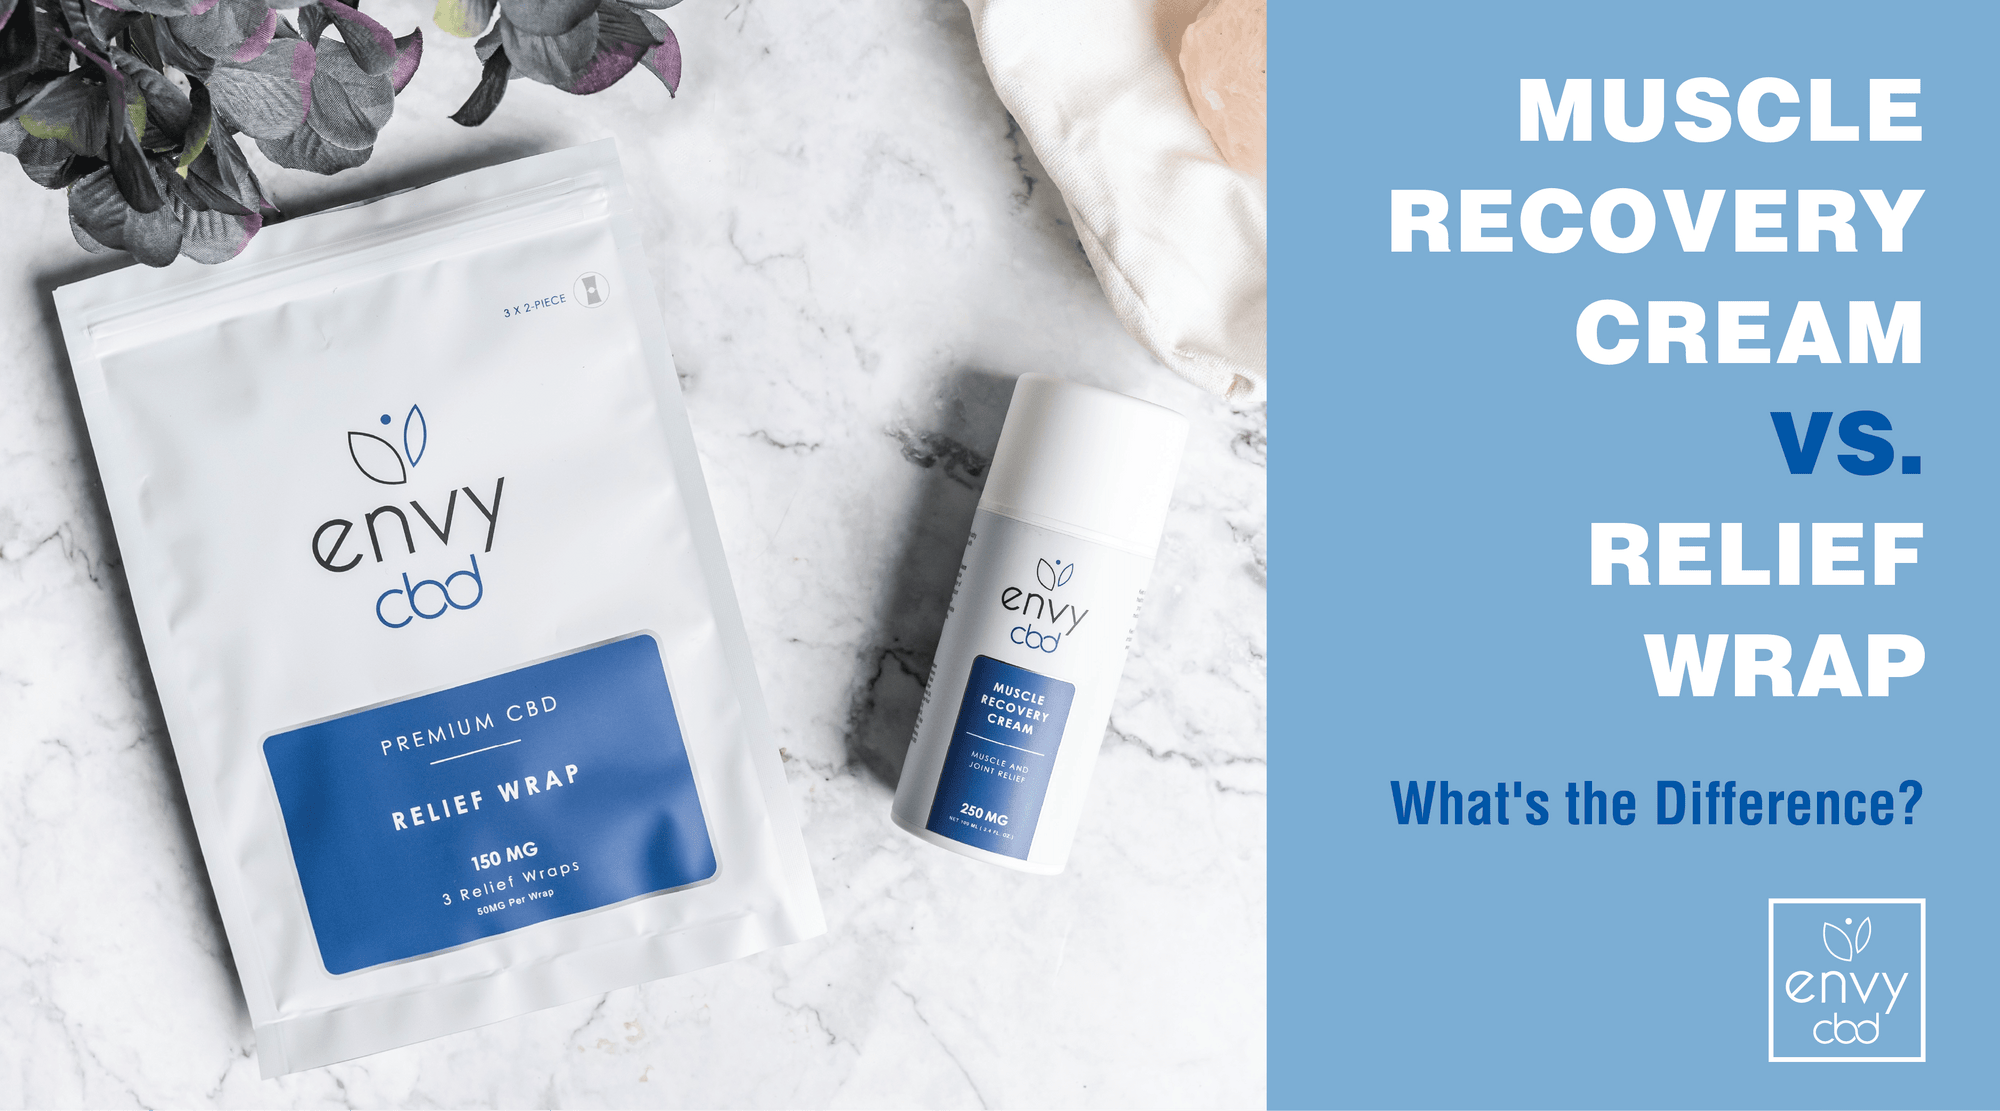 Muscle Recovery Cream vs. Relief Wrap - What's the Difference?